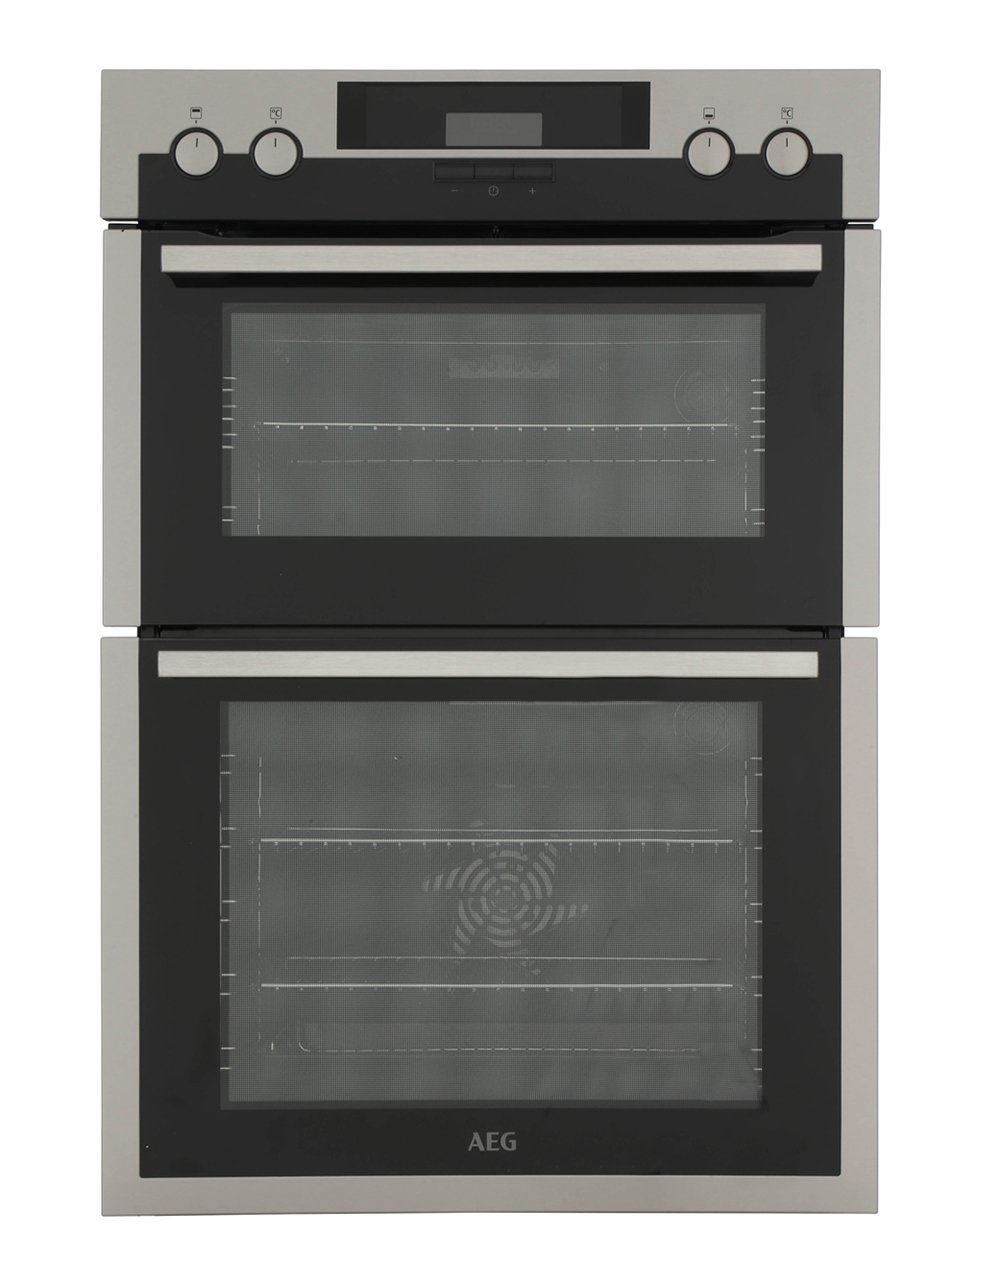 AEG DCS431110M SurroundCook Double Built In Electric Oven